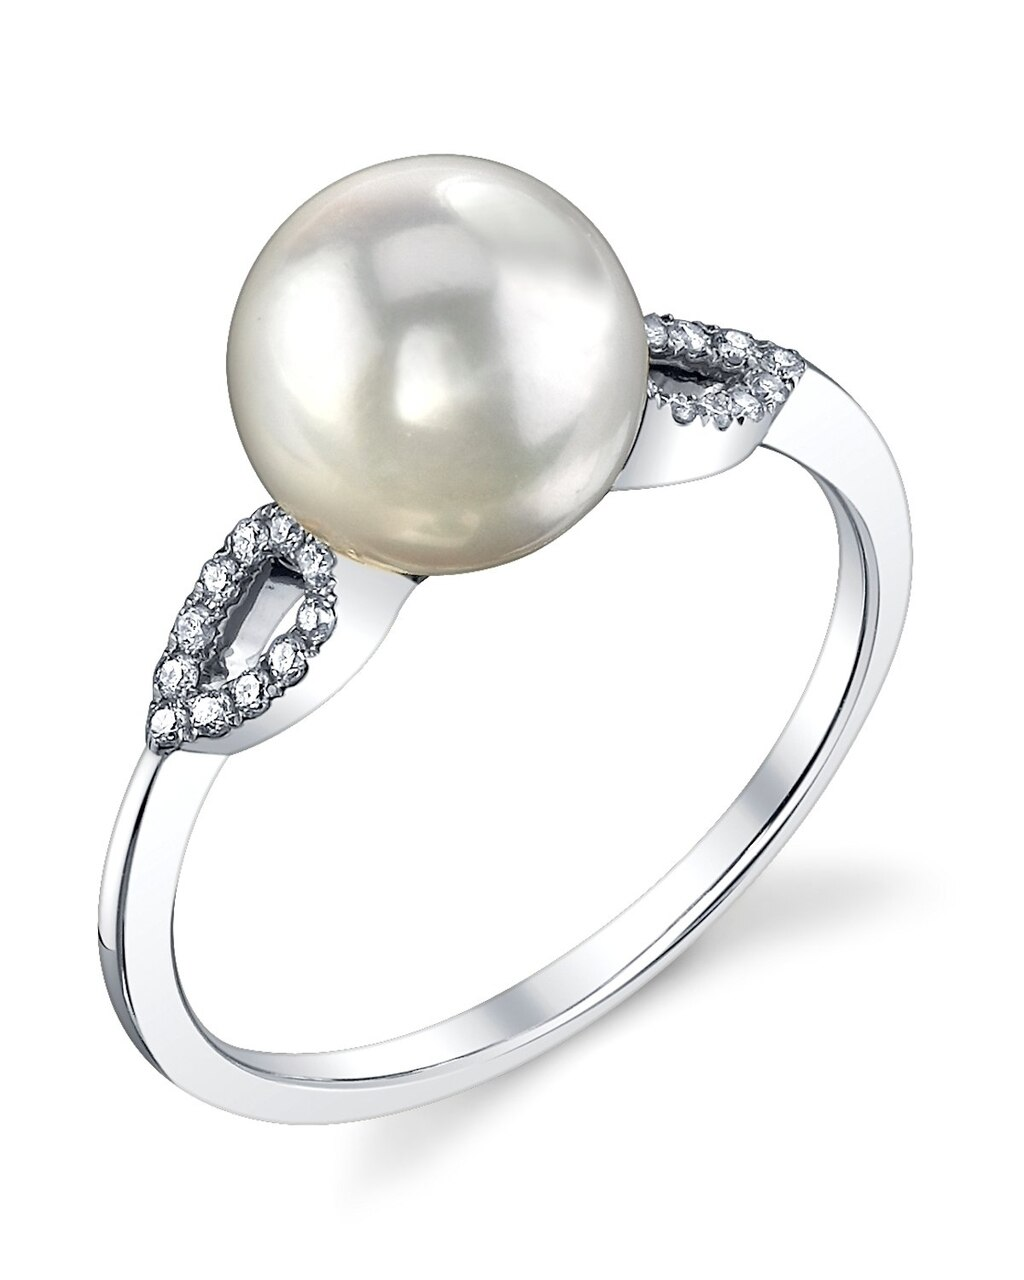 This exquisite ring features an 8.0-8.5mm Japanese Akoya pearl, handpicked for its luminous luster